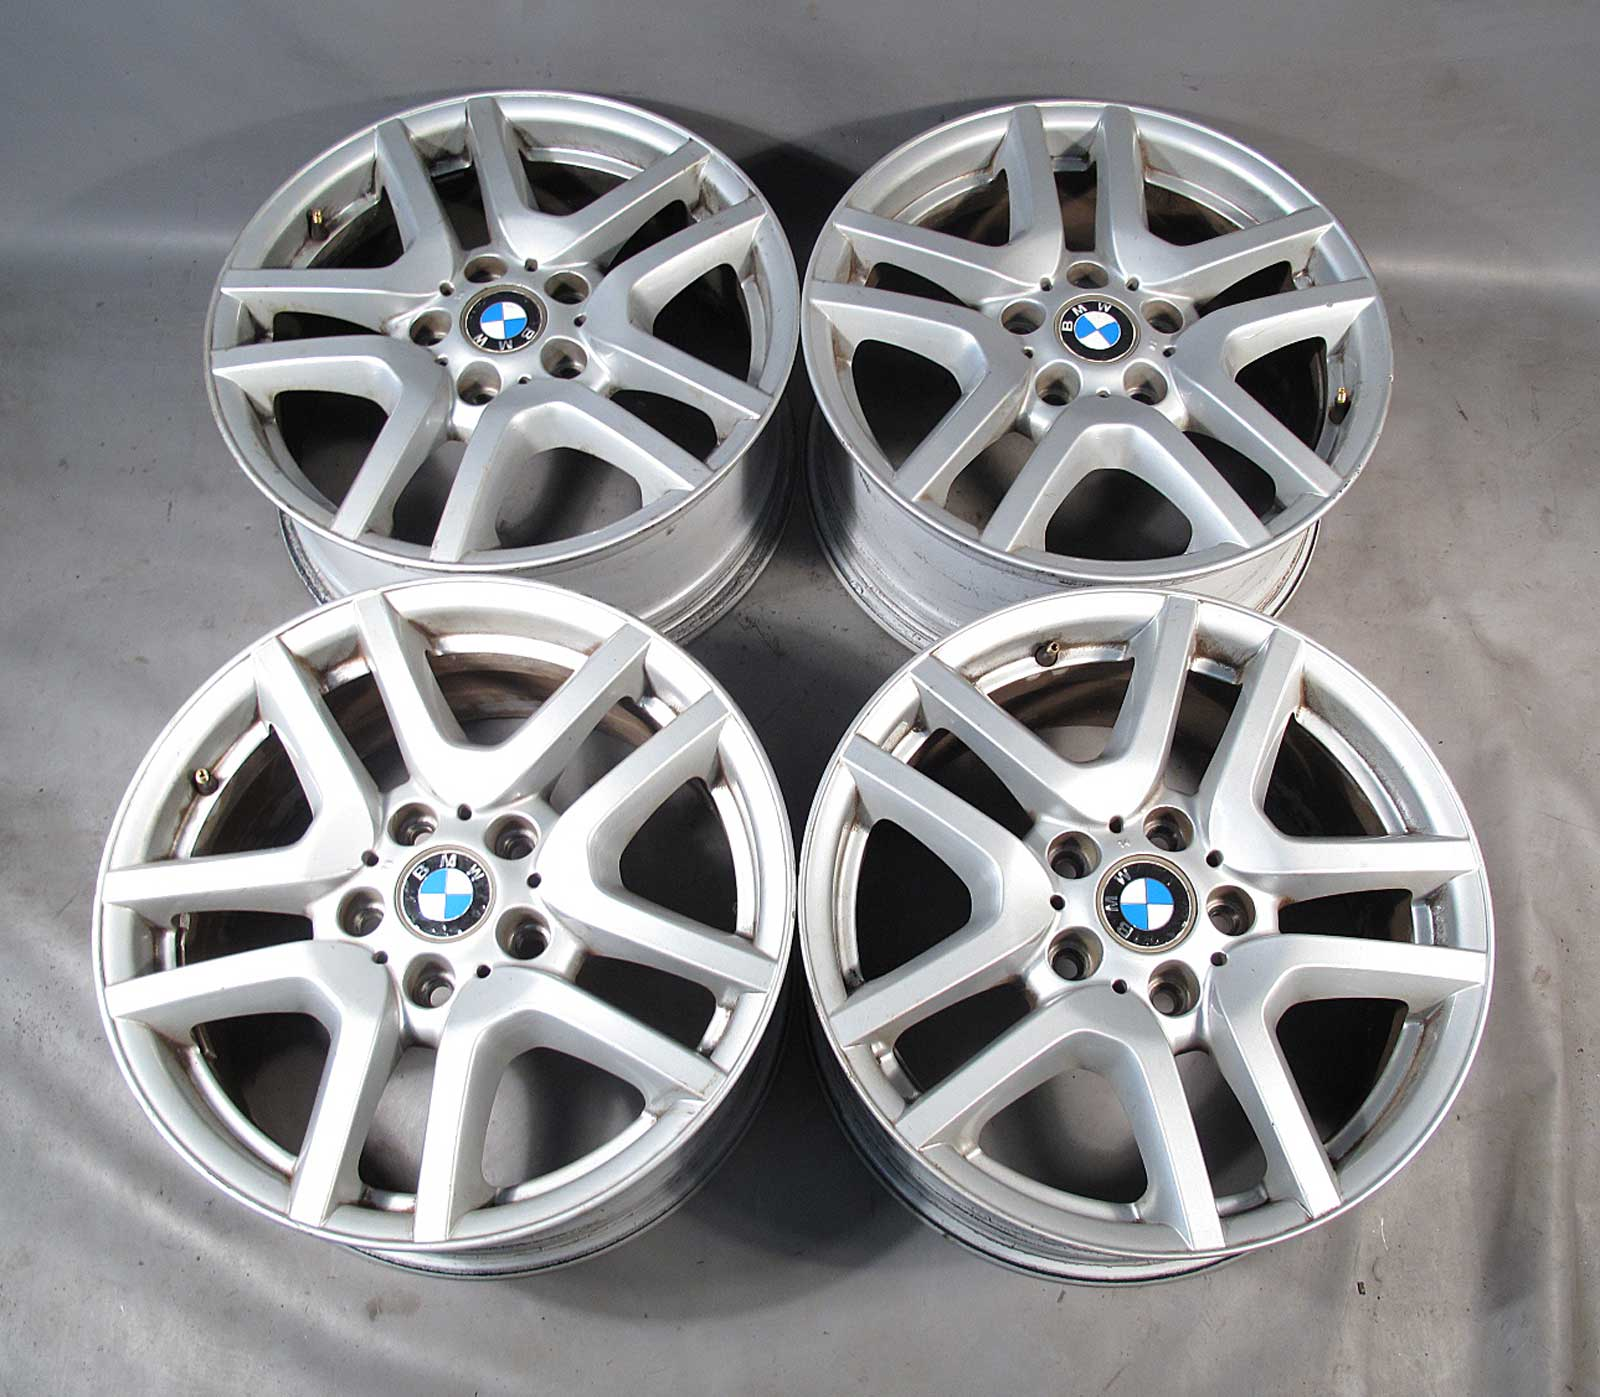 and china size styles style replica dsyqbbtgcawp bmw alloy wheel high performance product inch rear front rims rim